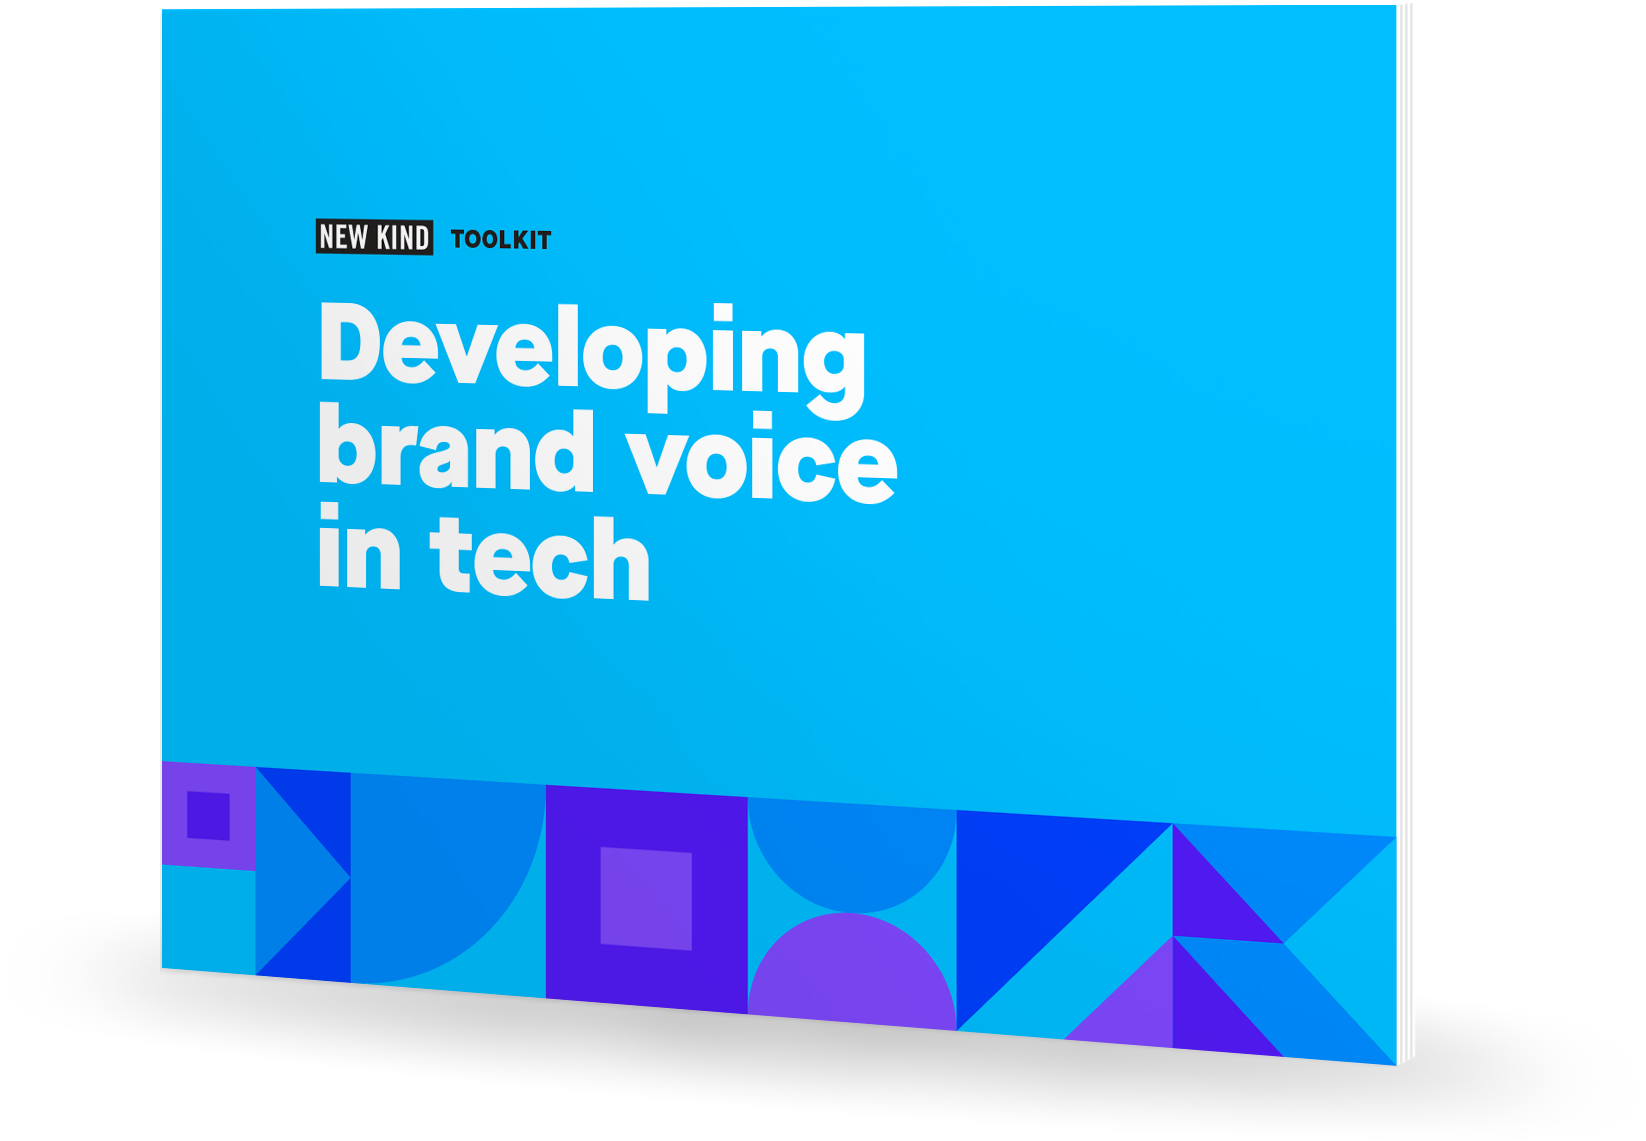 ContentUpgrade_Developing brand voice in tech_cover mockup2-4